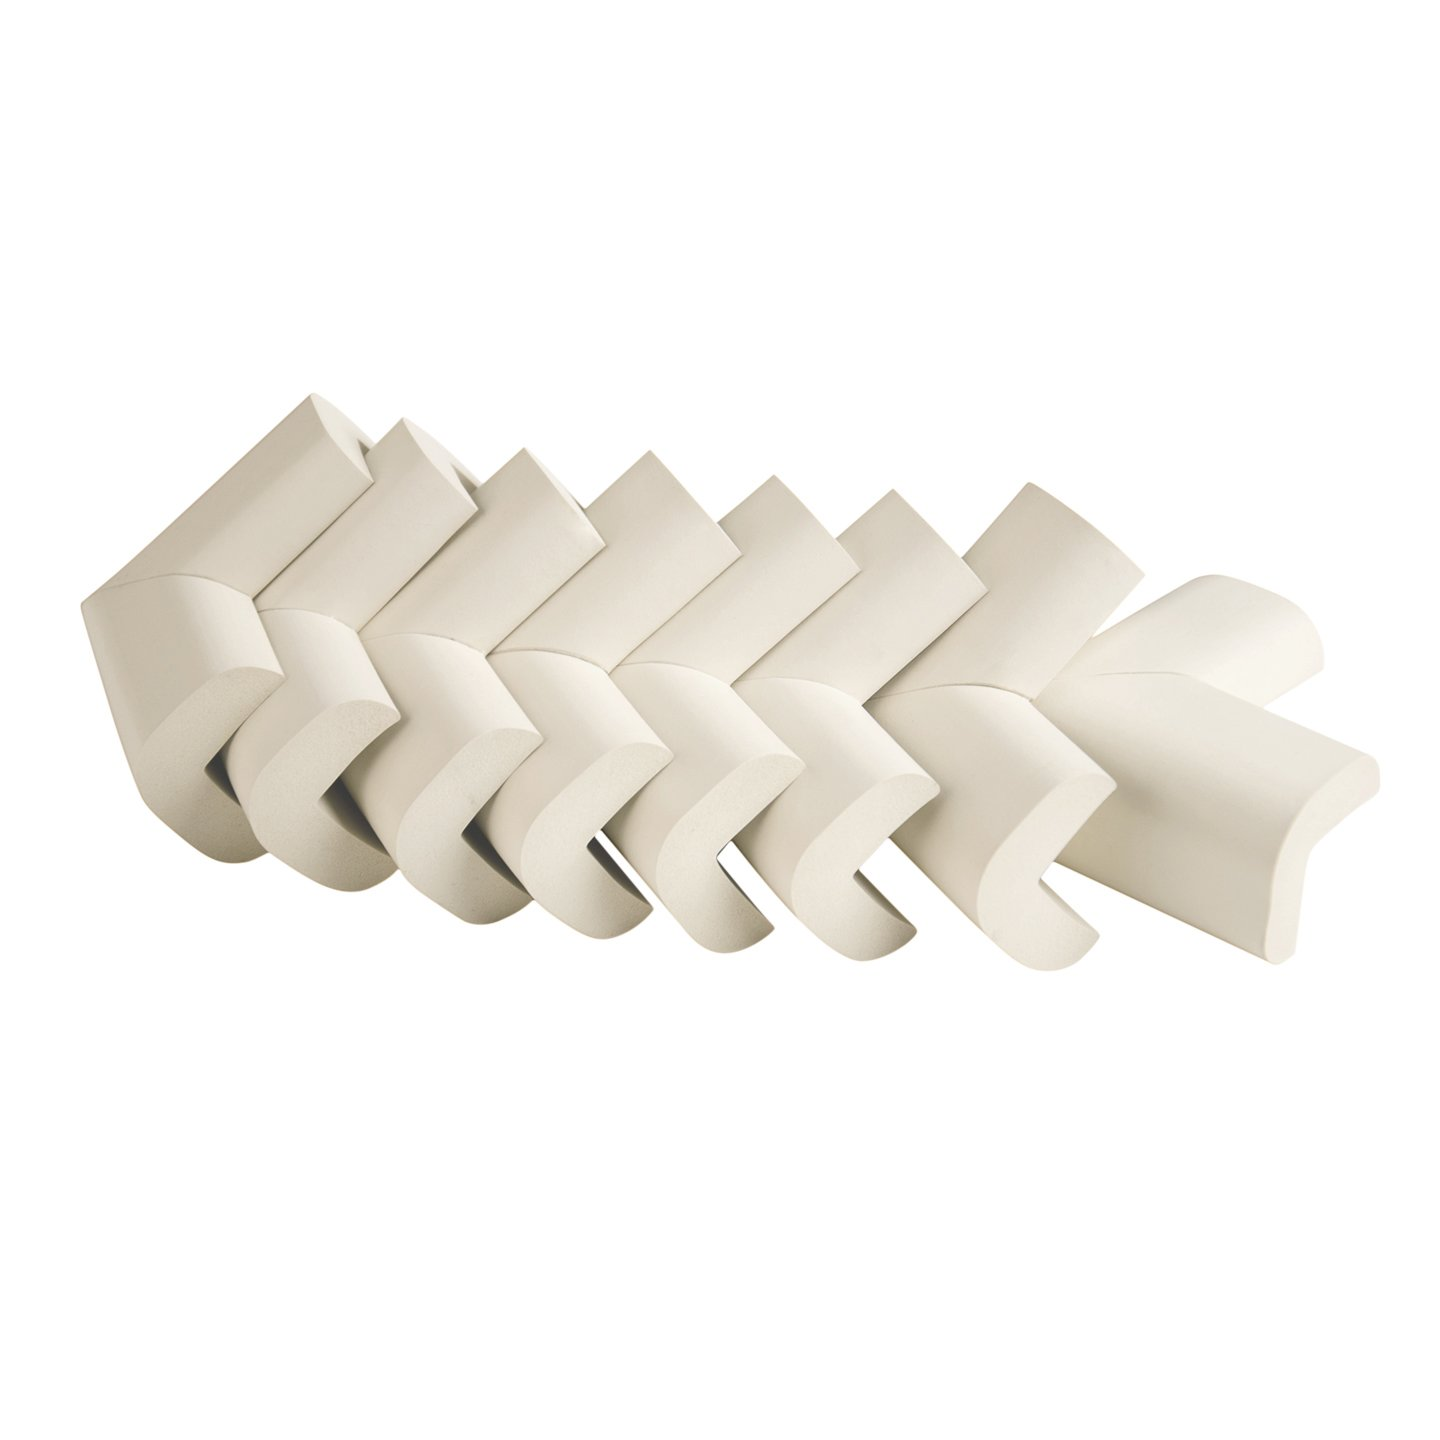 Mombella 8pcs Ivory high Density NBR Foam Corner Guards with High Adhension 3M FOAMING Bonding Tape,Easy to Install and Strong Enough to Protect Babies&Old People from Sharp Corners.